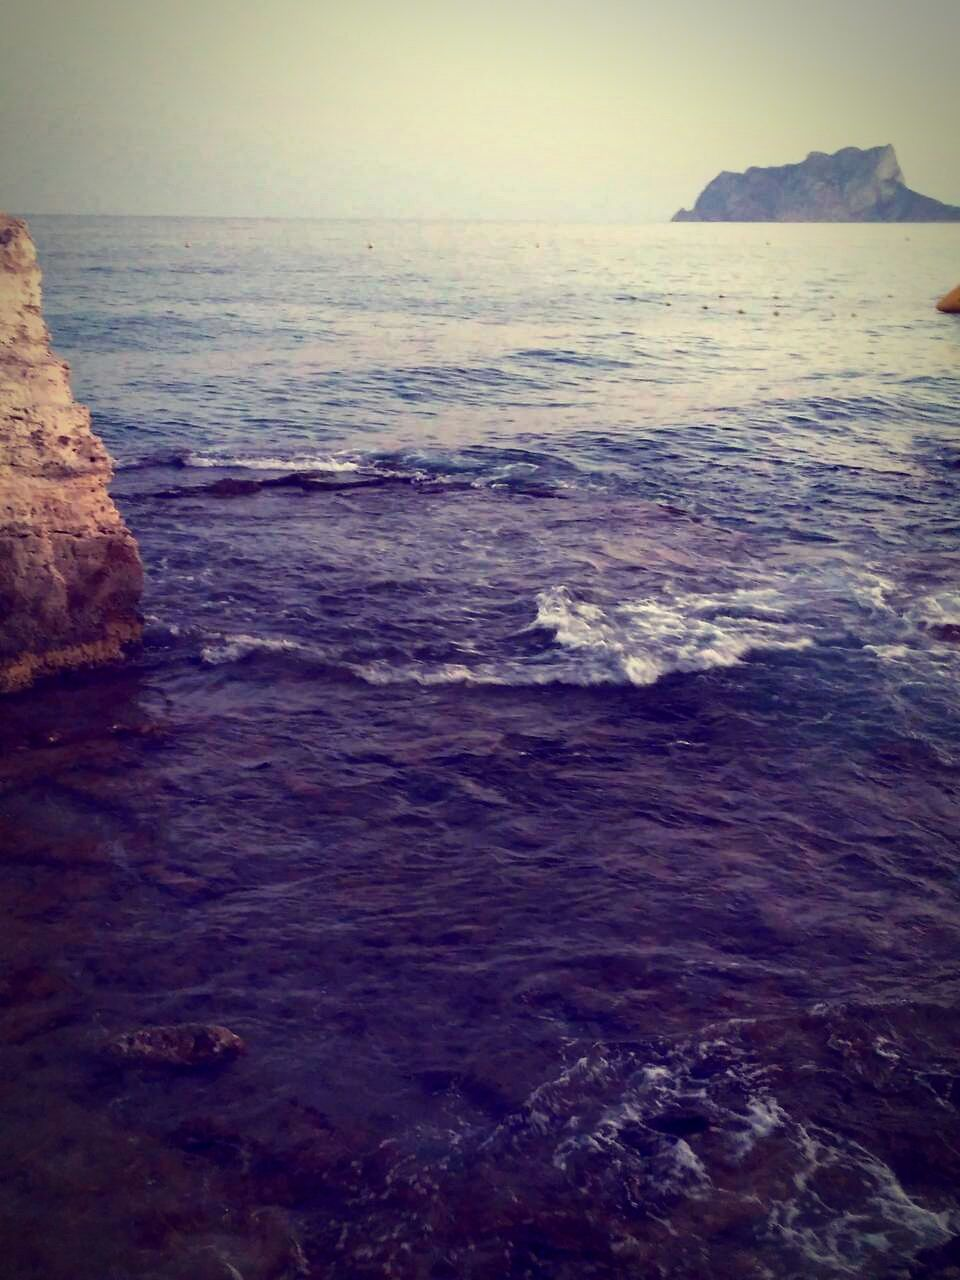 sea, water, nature, beauty in nature, scenics, horizon over water, tranquil scene, rock - object, tranquility, no people, wave, beach, outdoors, sky, day